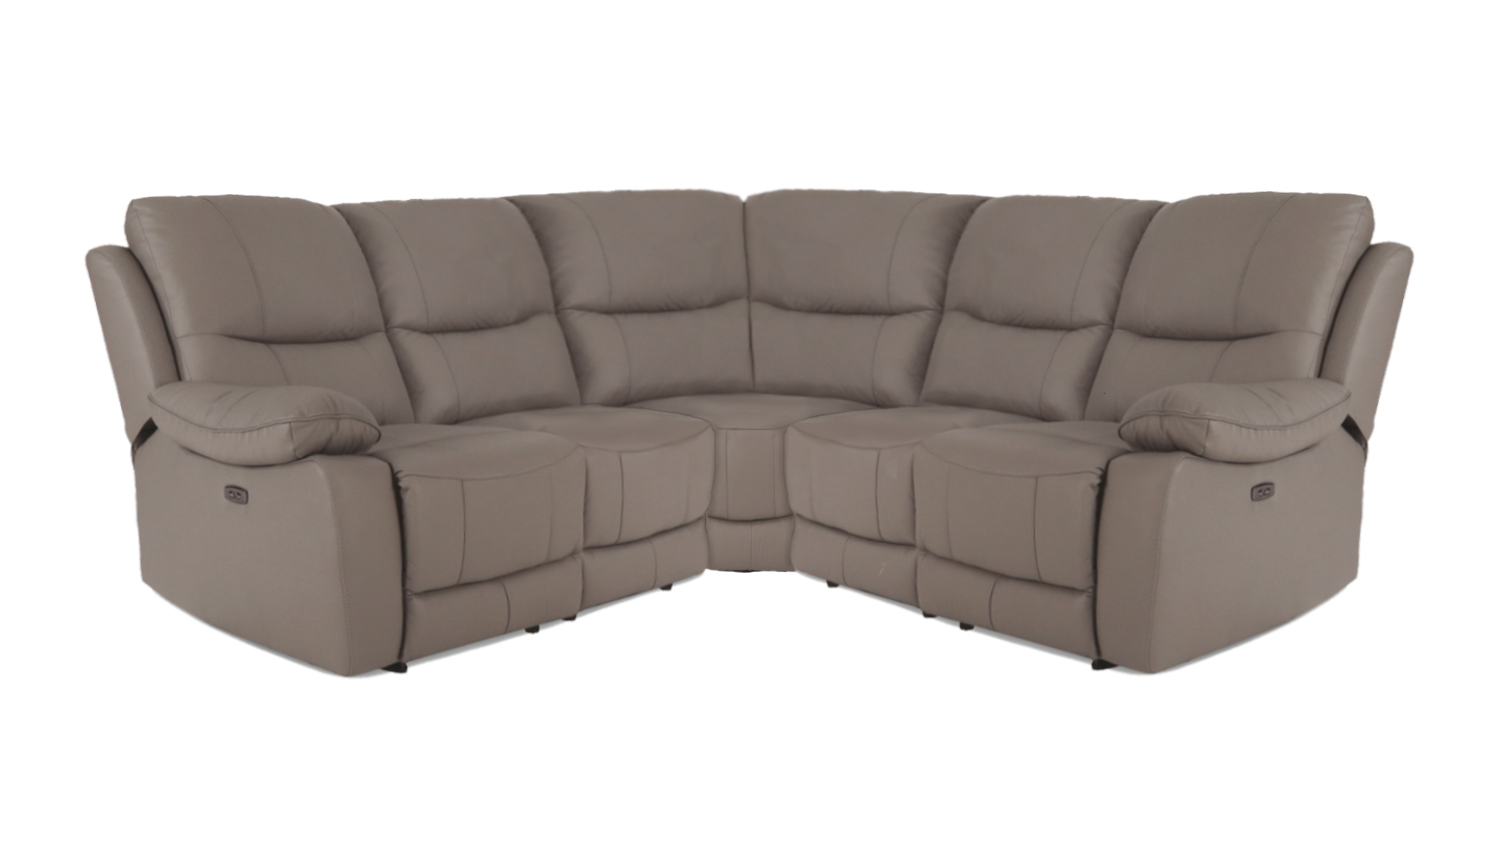 Picture of: Left Hand Facing 2 Corner 1 Power Recliner Corner Group Tivoli Collection Ahf Ahf Furniture Carpets